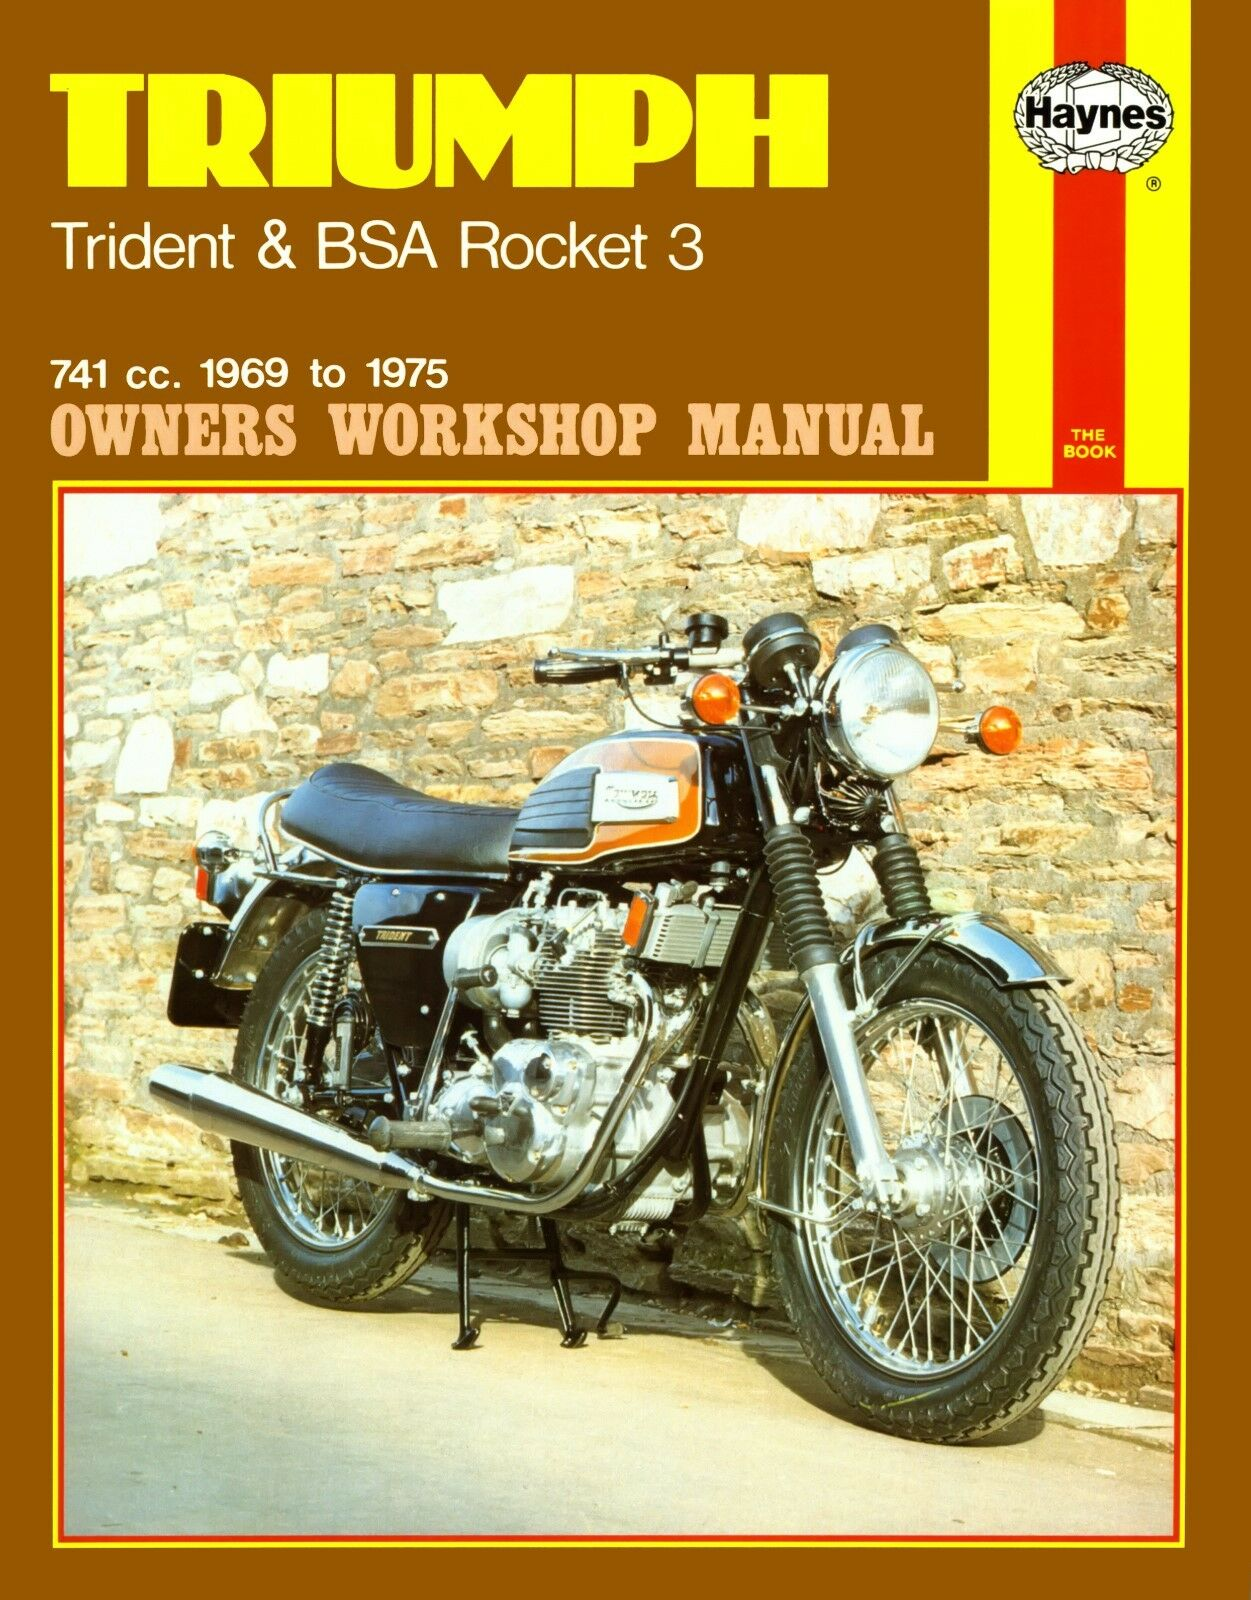 0136 Haynes Triumph Trident & BSA Rocket 3 (1969 - 1975) Workshop Manual 1  of 1FREE Shipping See More